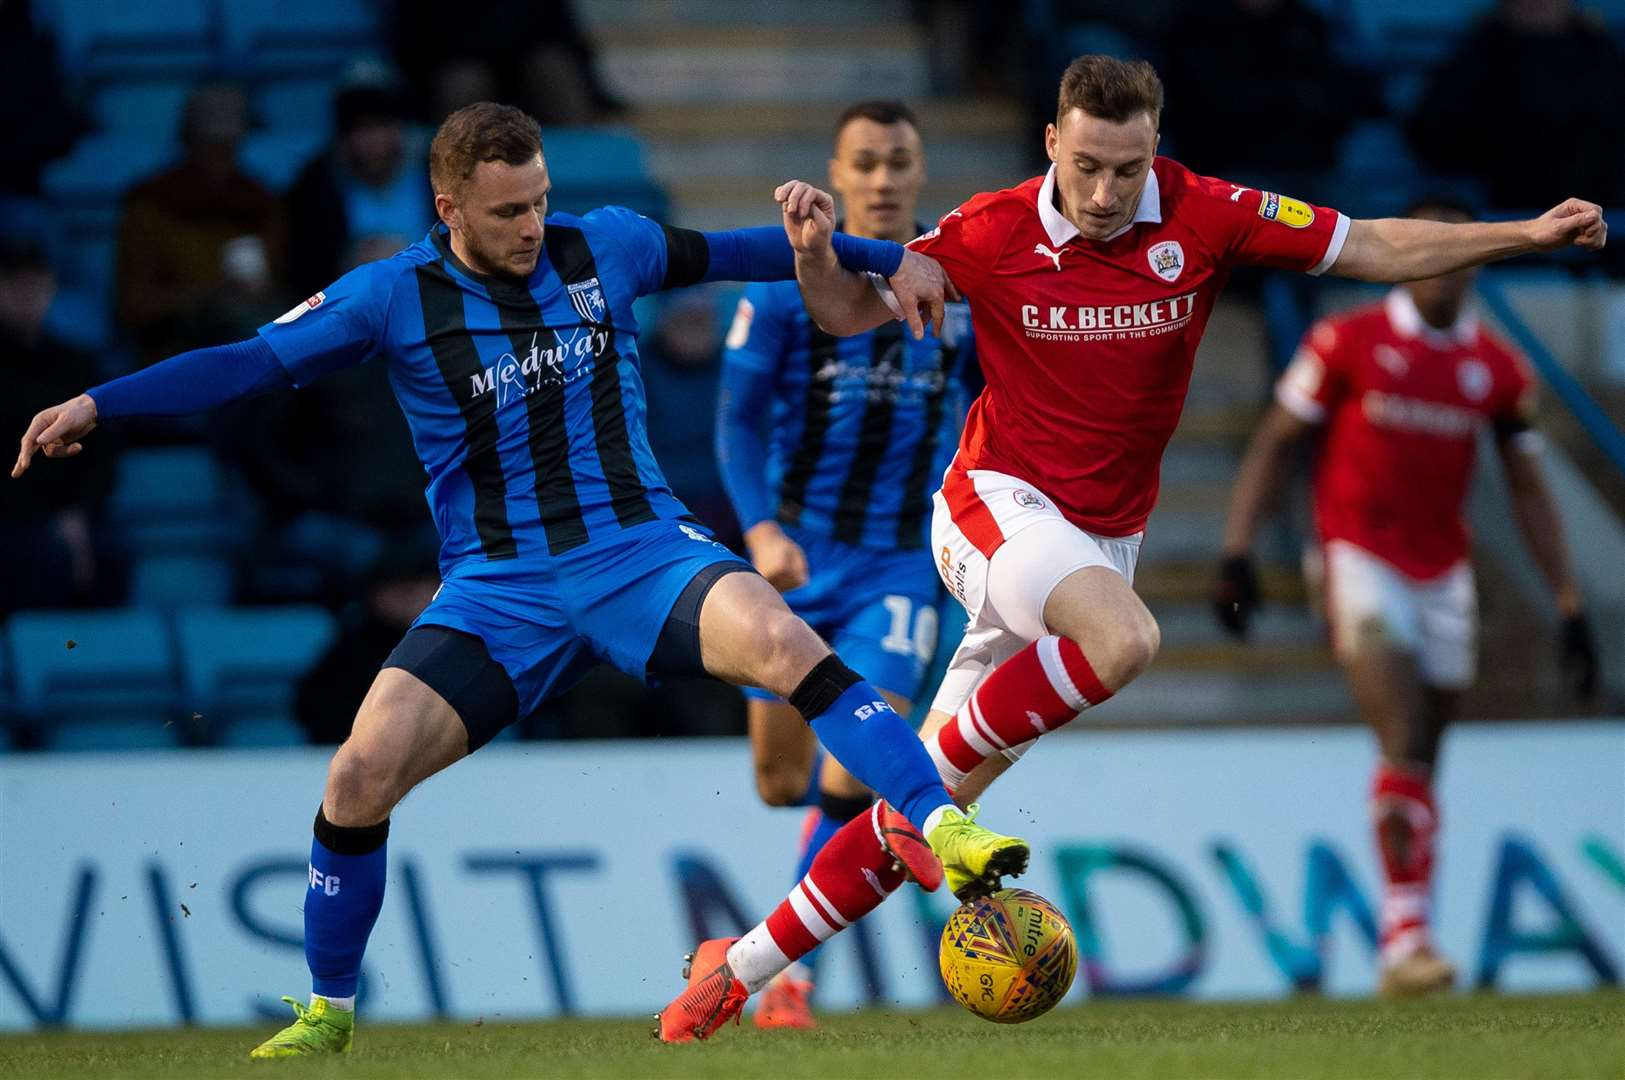 Dean Parrett gets a foot in against Mike Bahre Picture: Ady Kerry